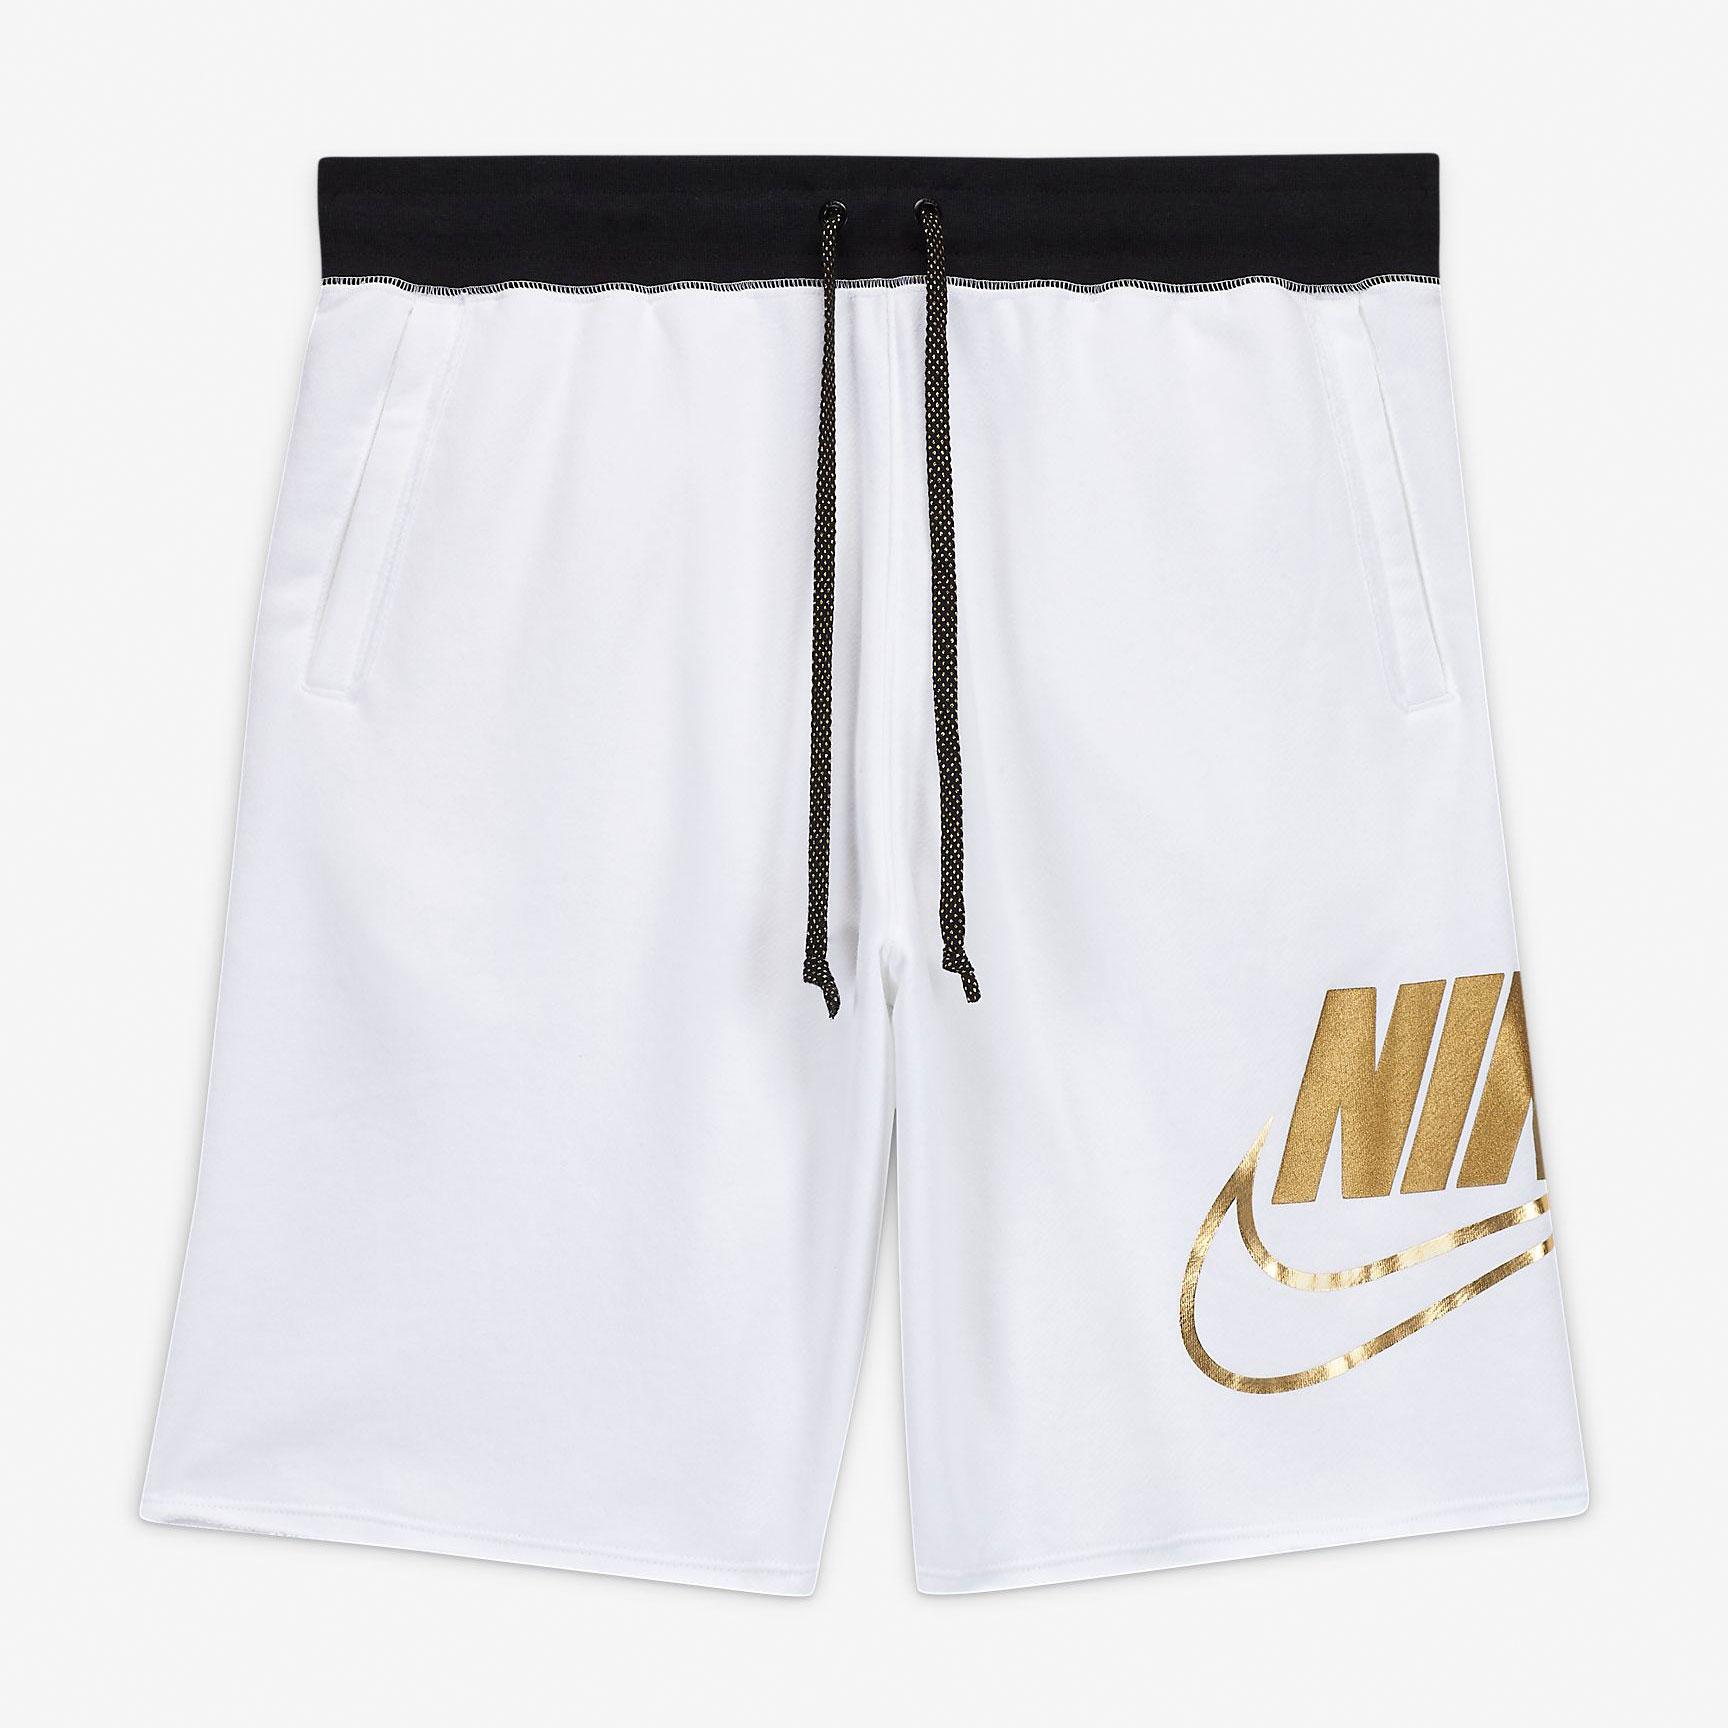 nike-gold-medal-shorts-1